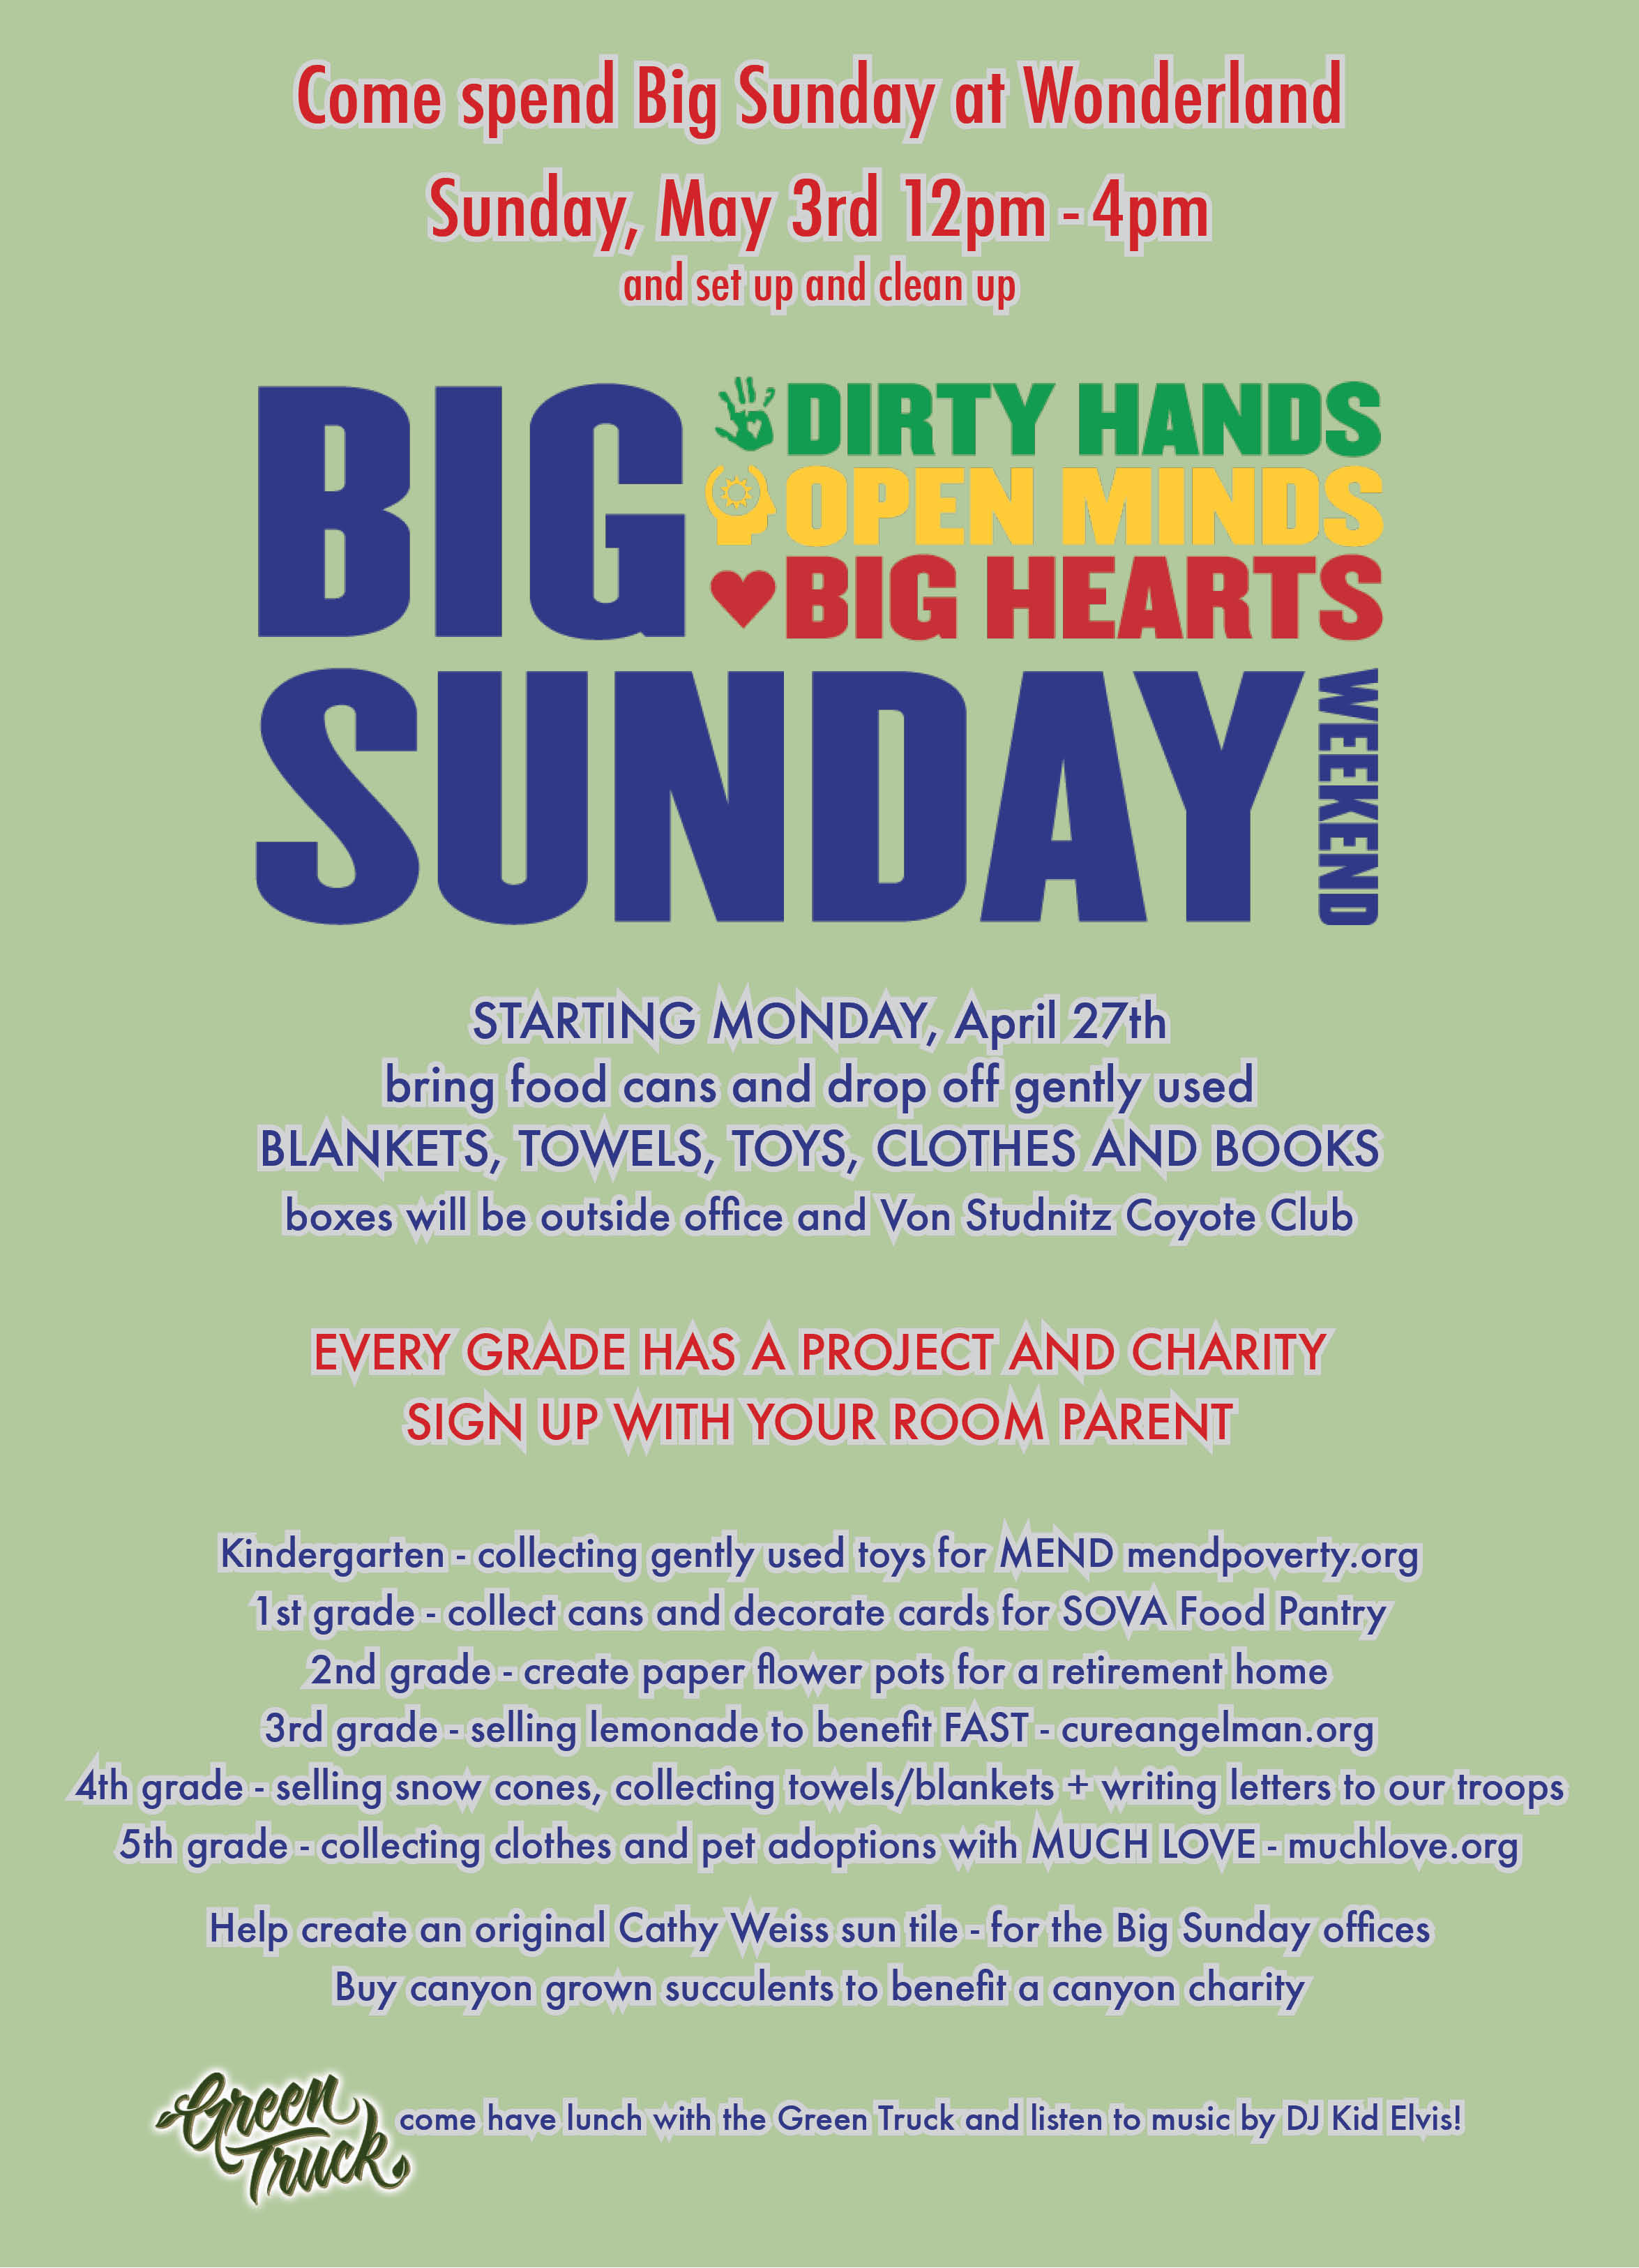 sunday get your hands dirty much love in laurel canyon big sunday school flyer 2015